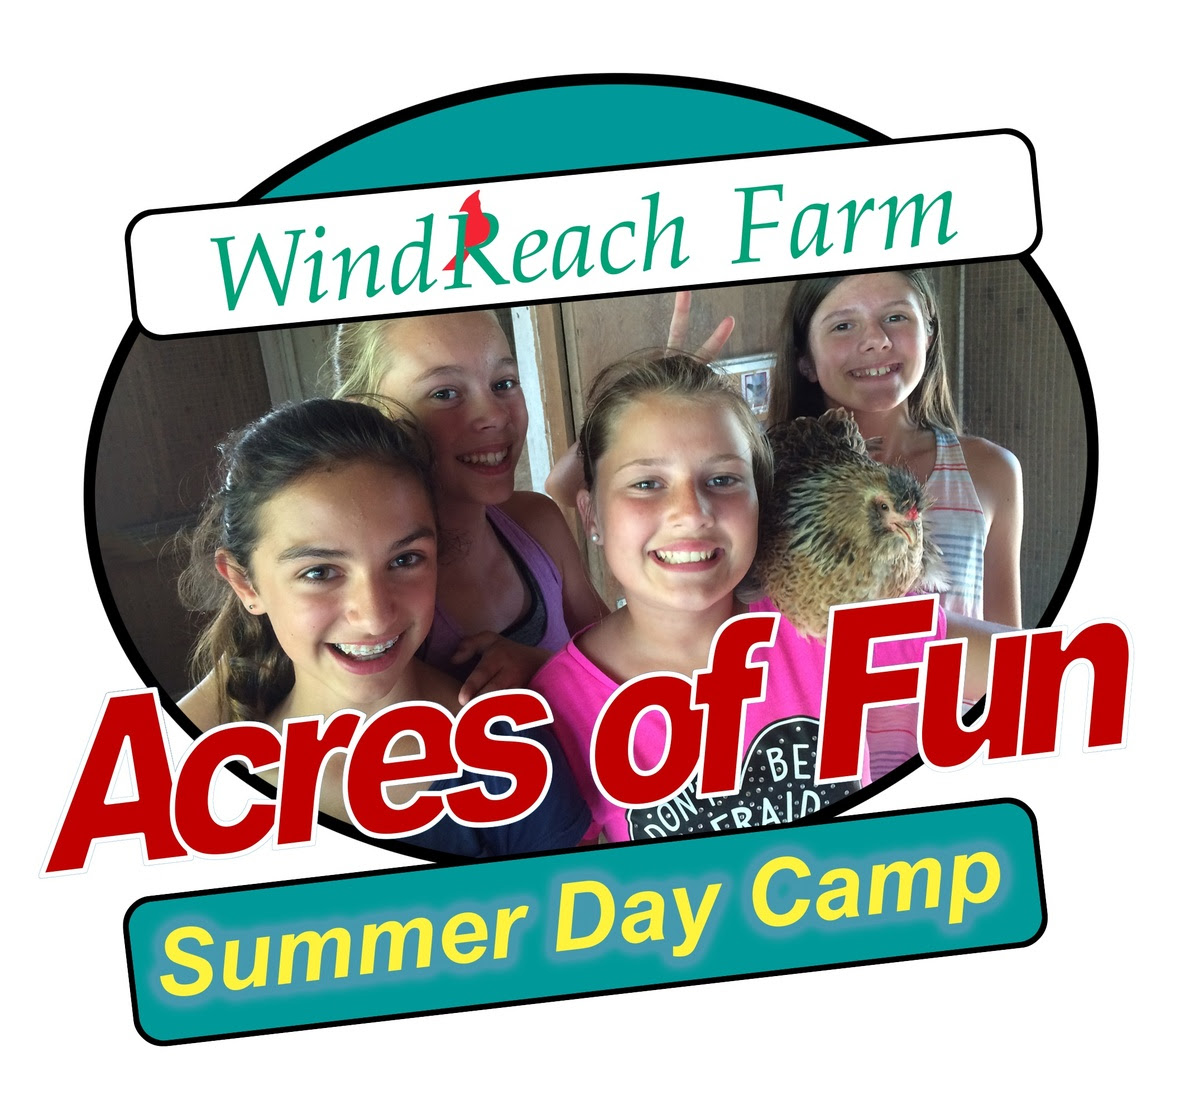 WindreachSummer Camp logo